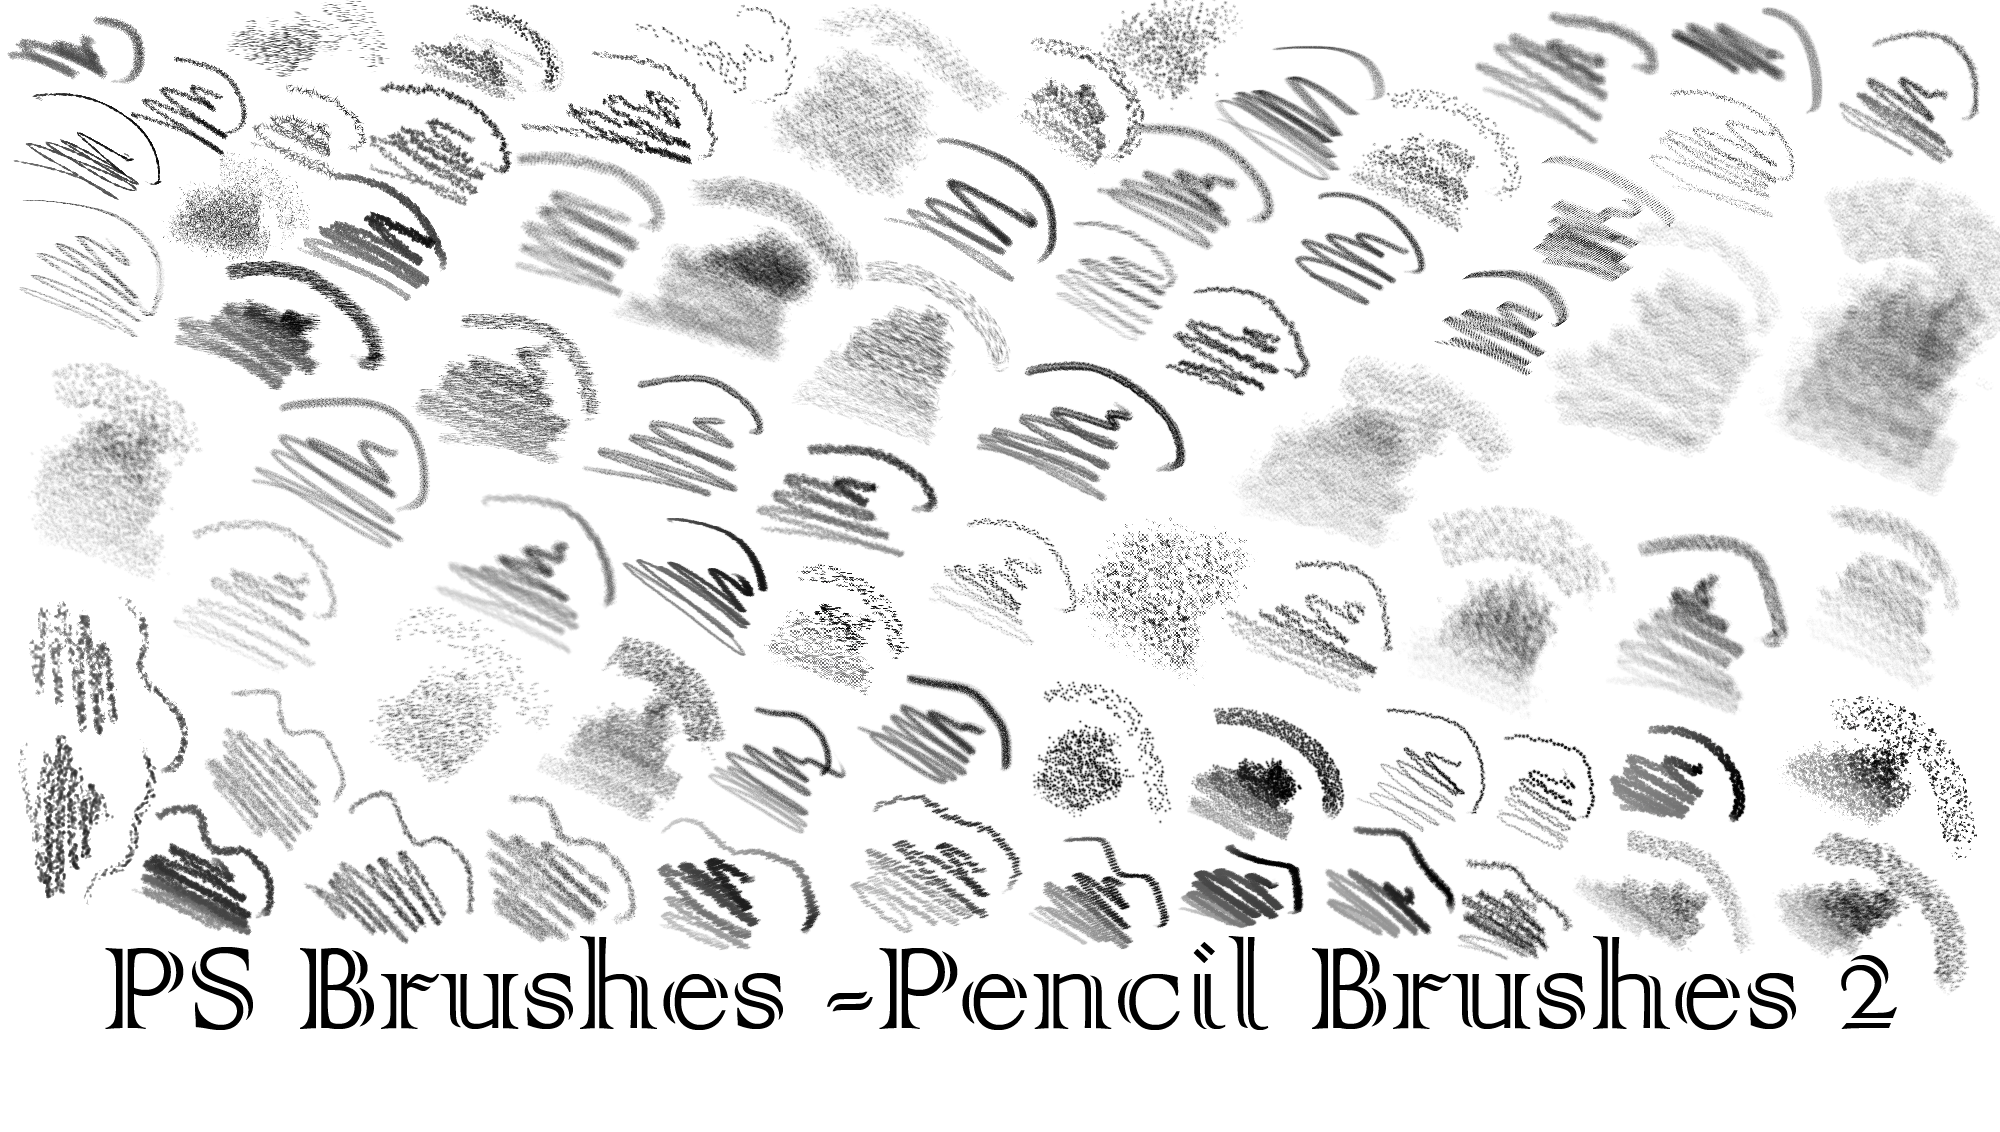 Ps7 brushes pencil 2 by dark zeblock